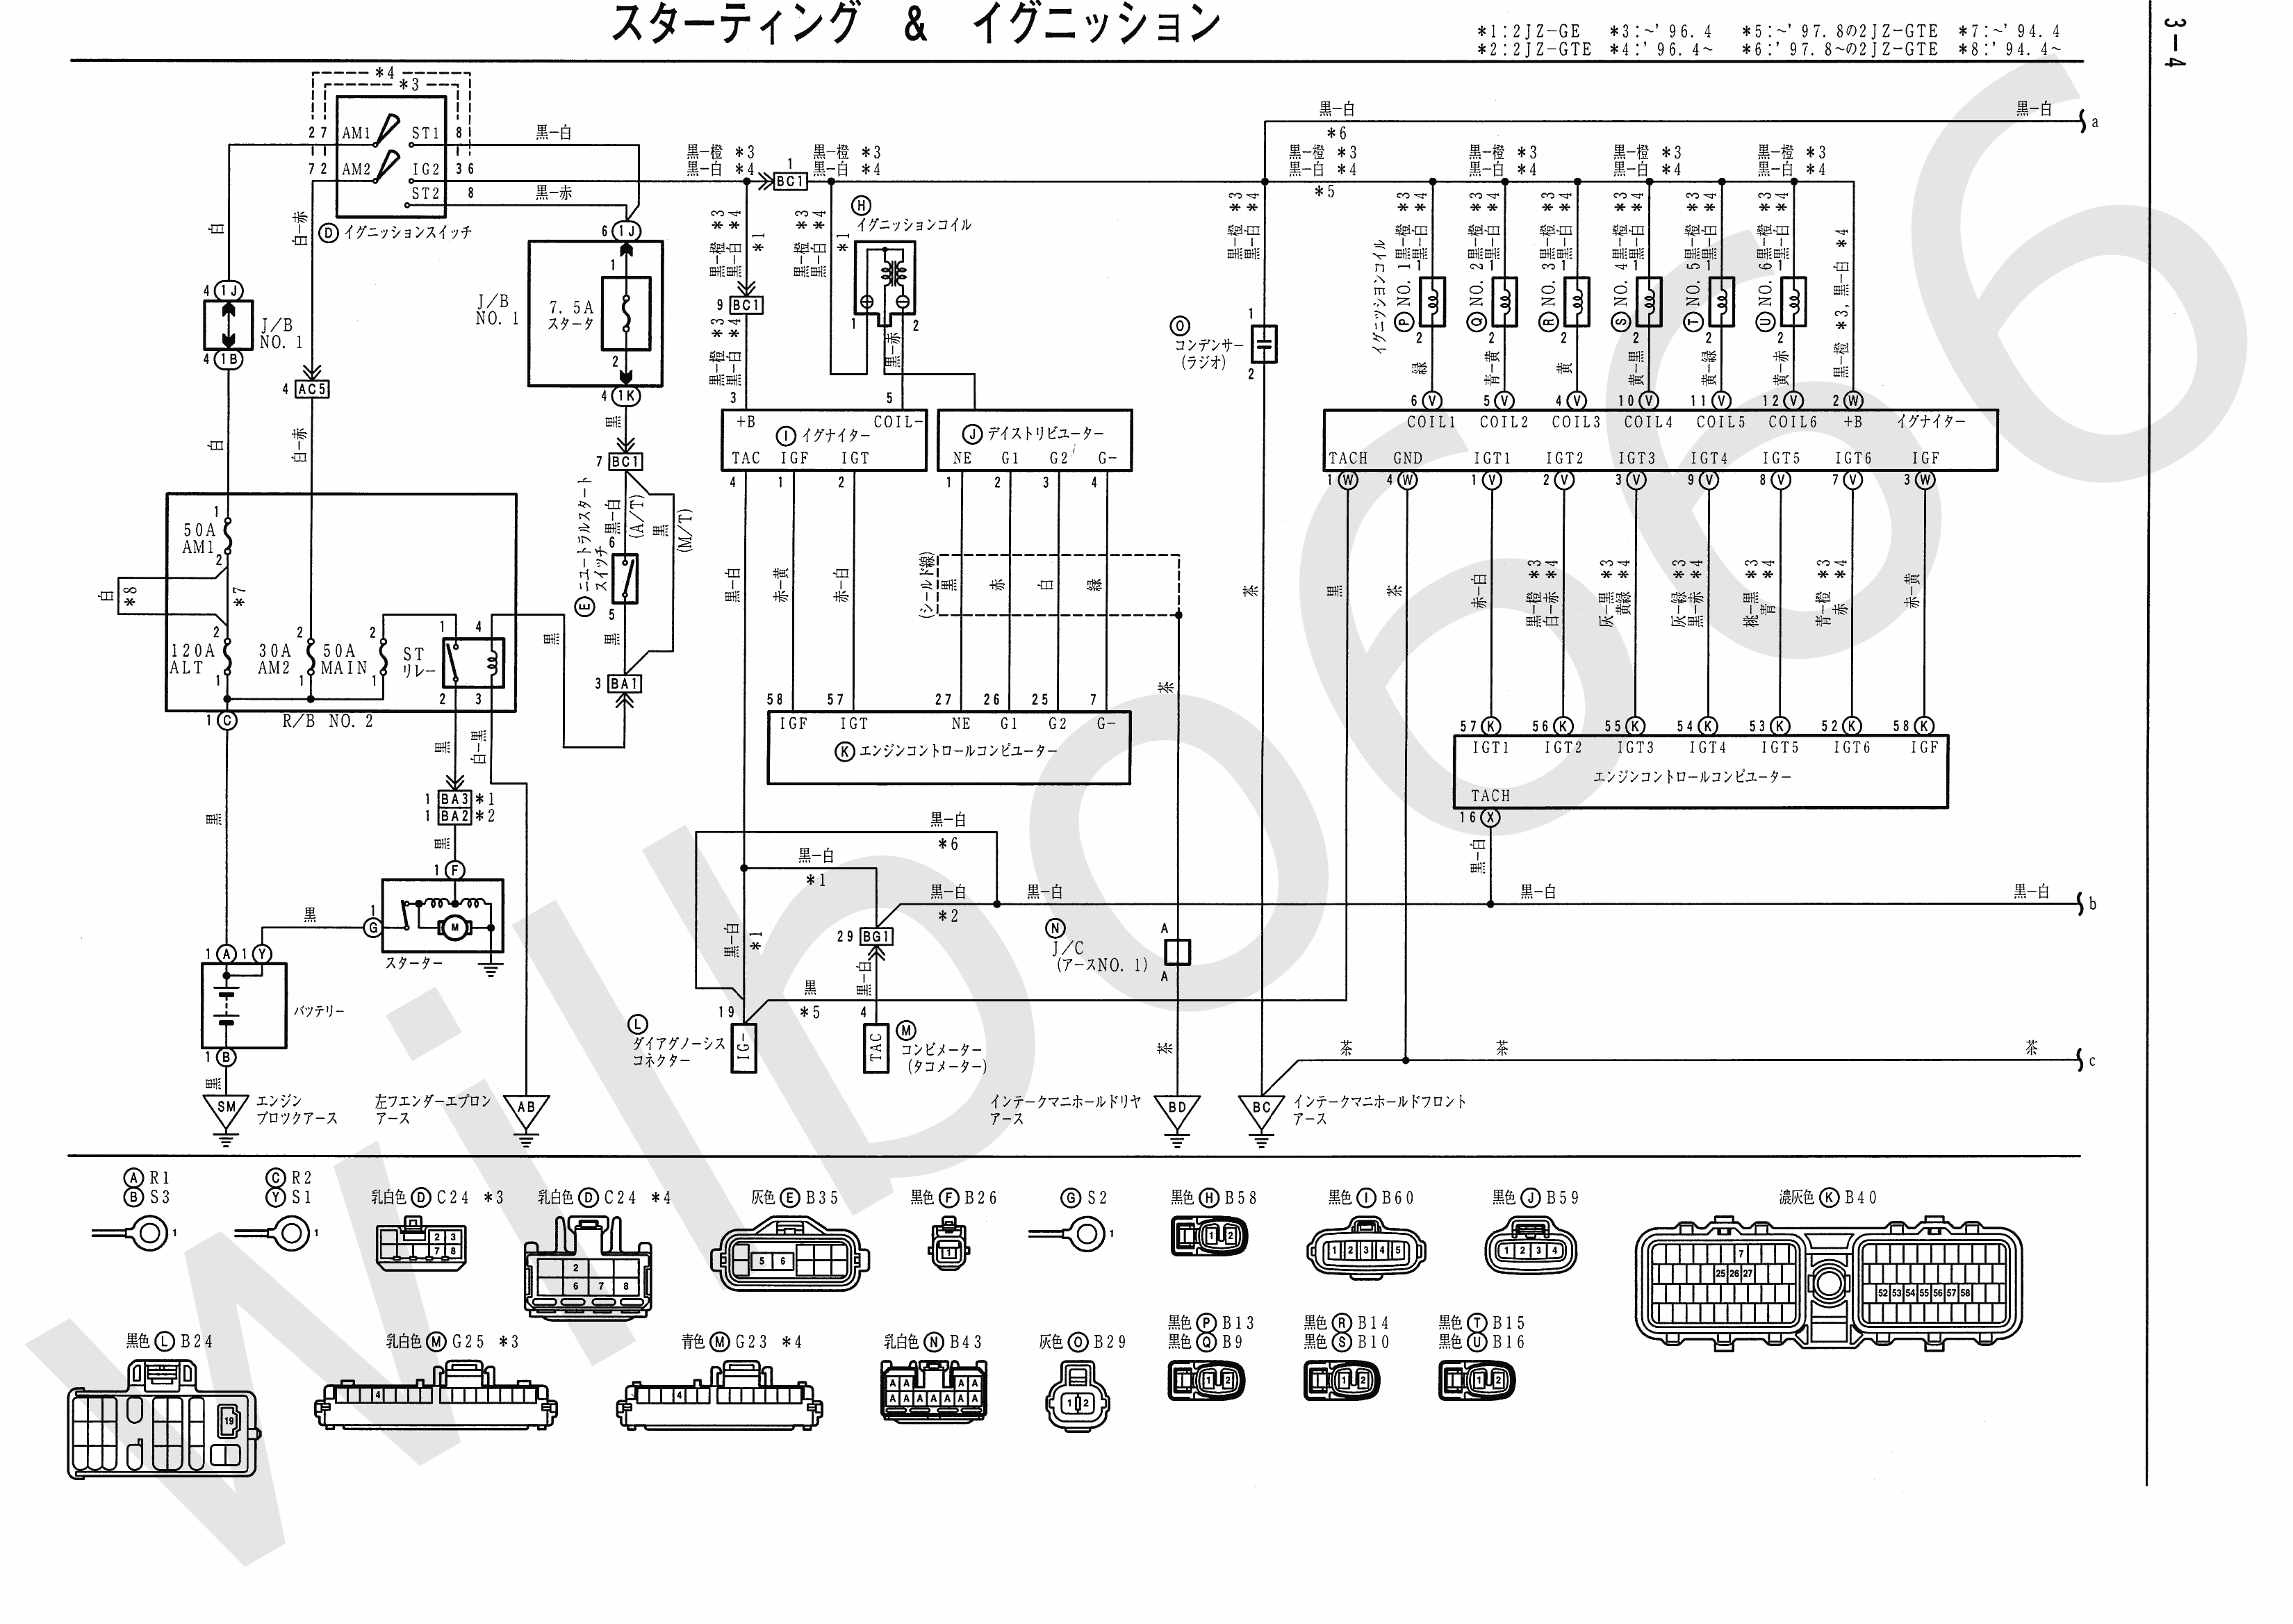 JZA80 Electrical Wiring Diagram 6742505 3 4 wilbo666 2jz ge jza80 supra engine wiring 2jz wiring diagram at gsmportal.co